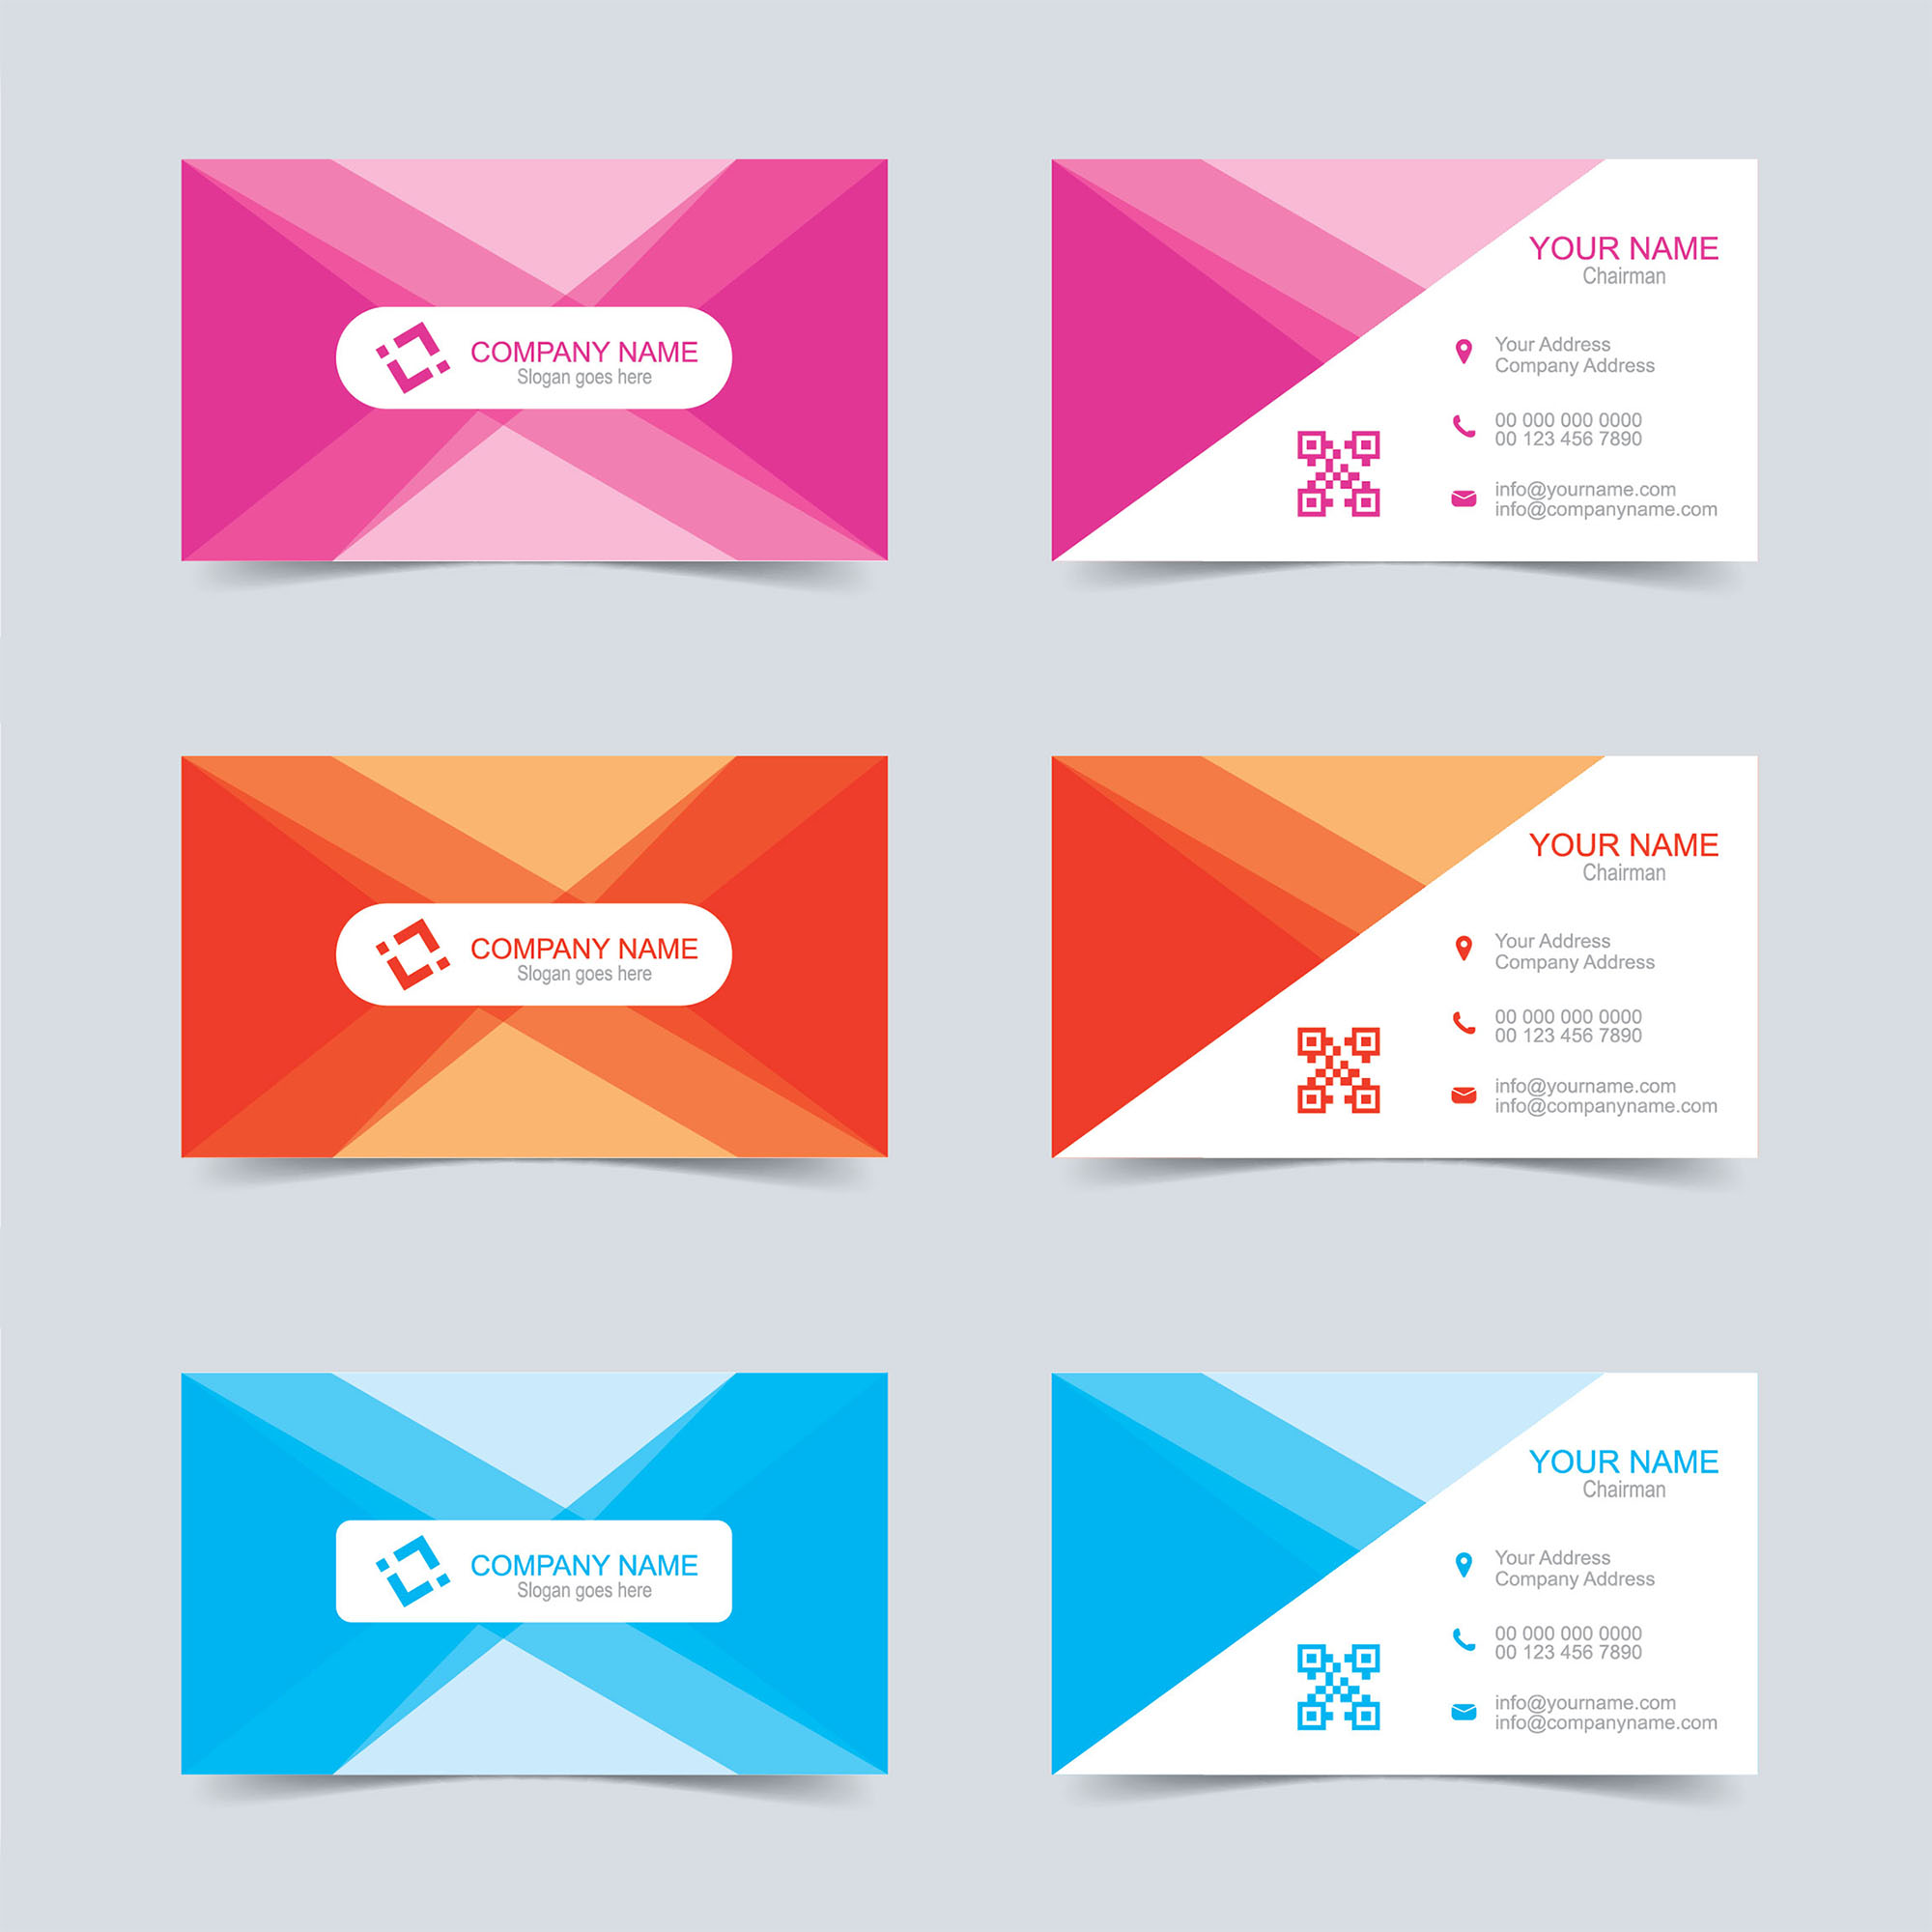 Vector Business Card Template Free Download Wisxicom - Business card templates designs